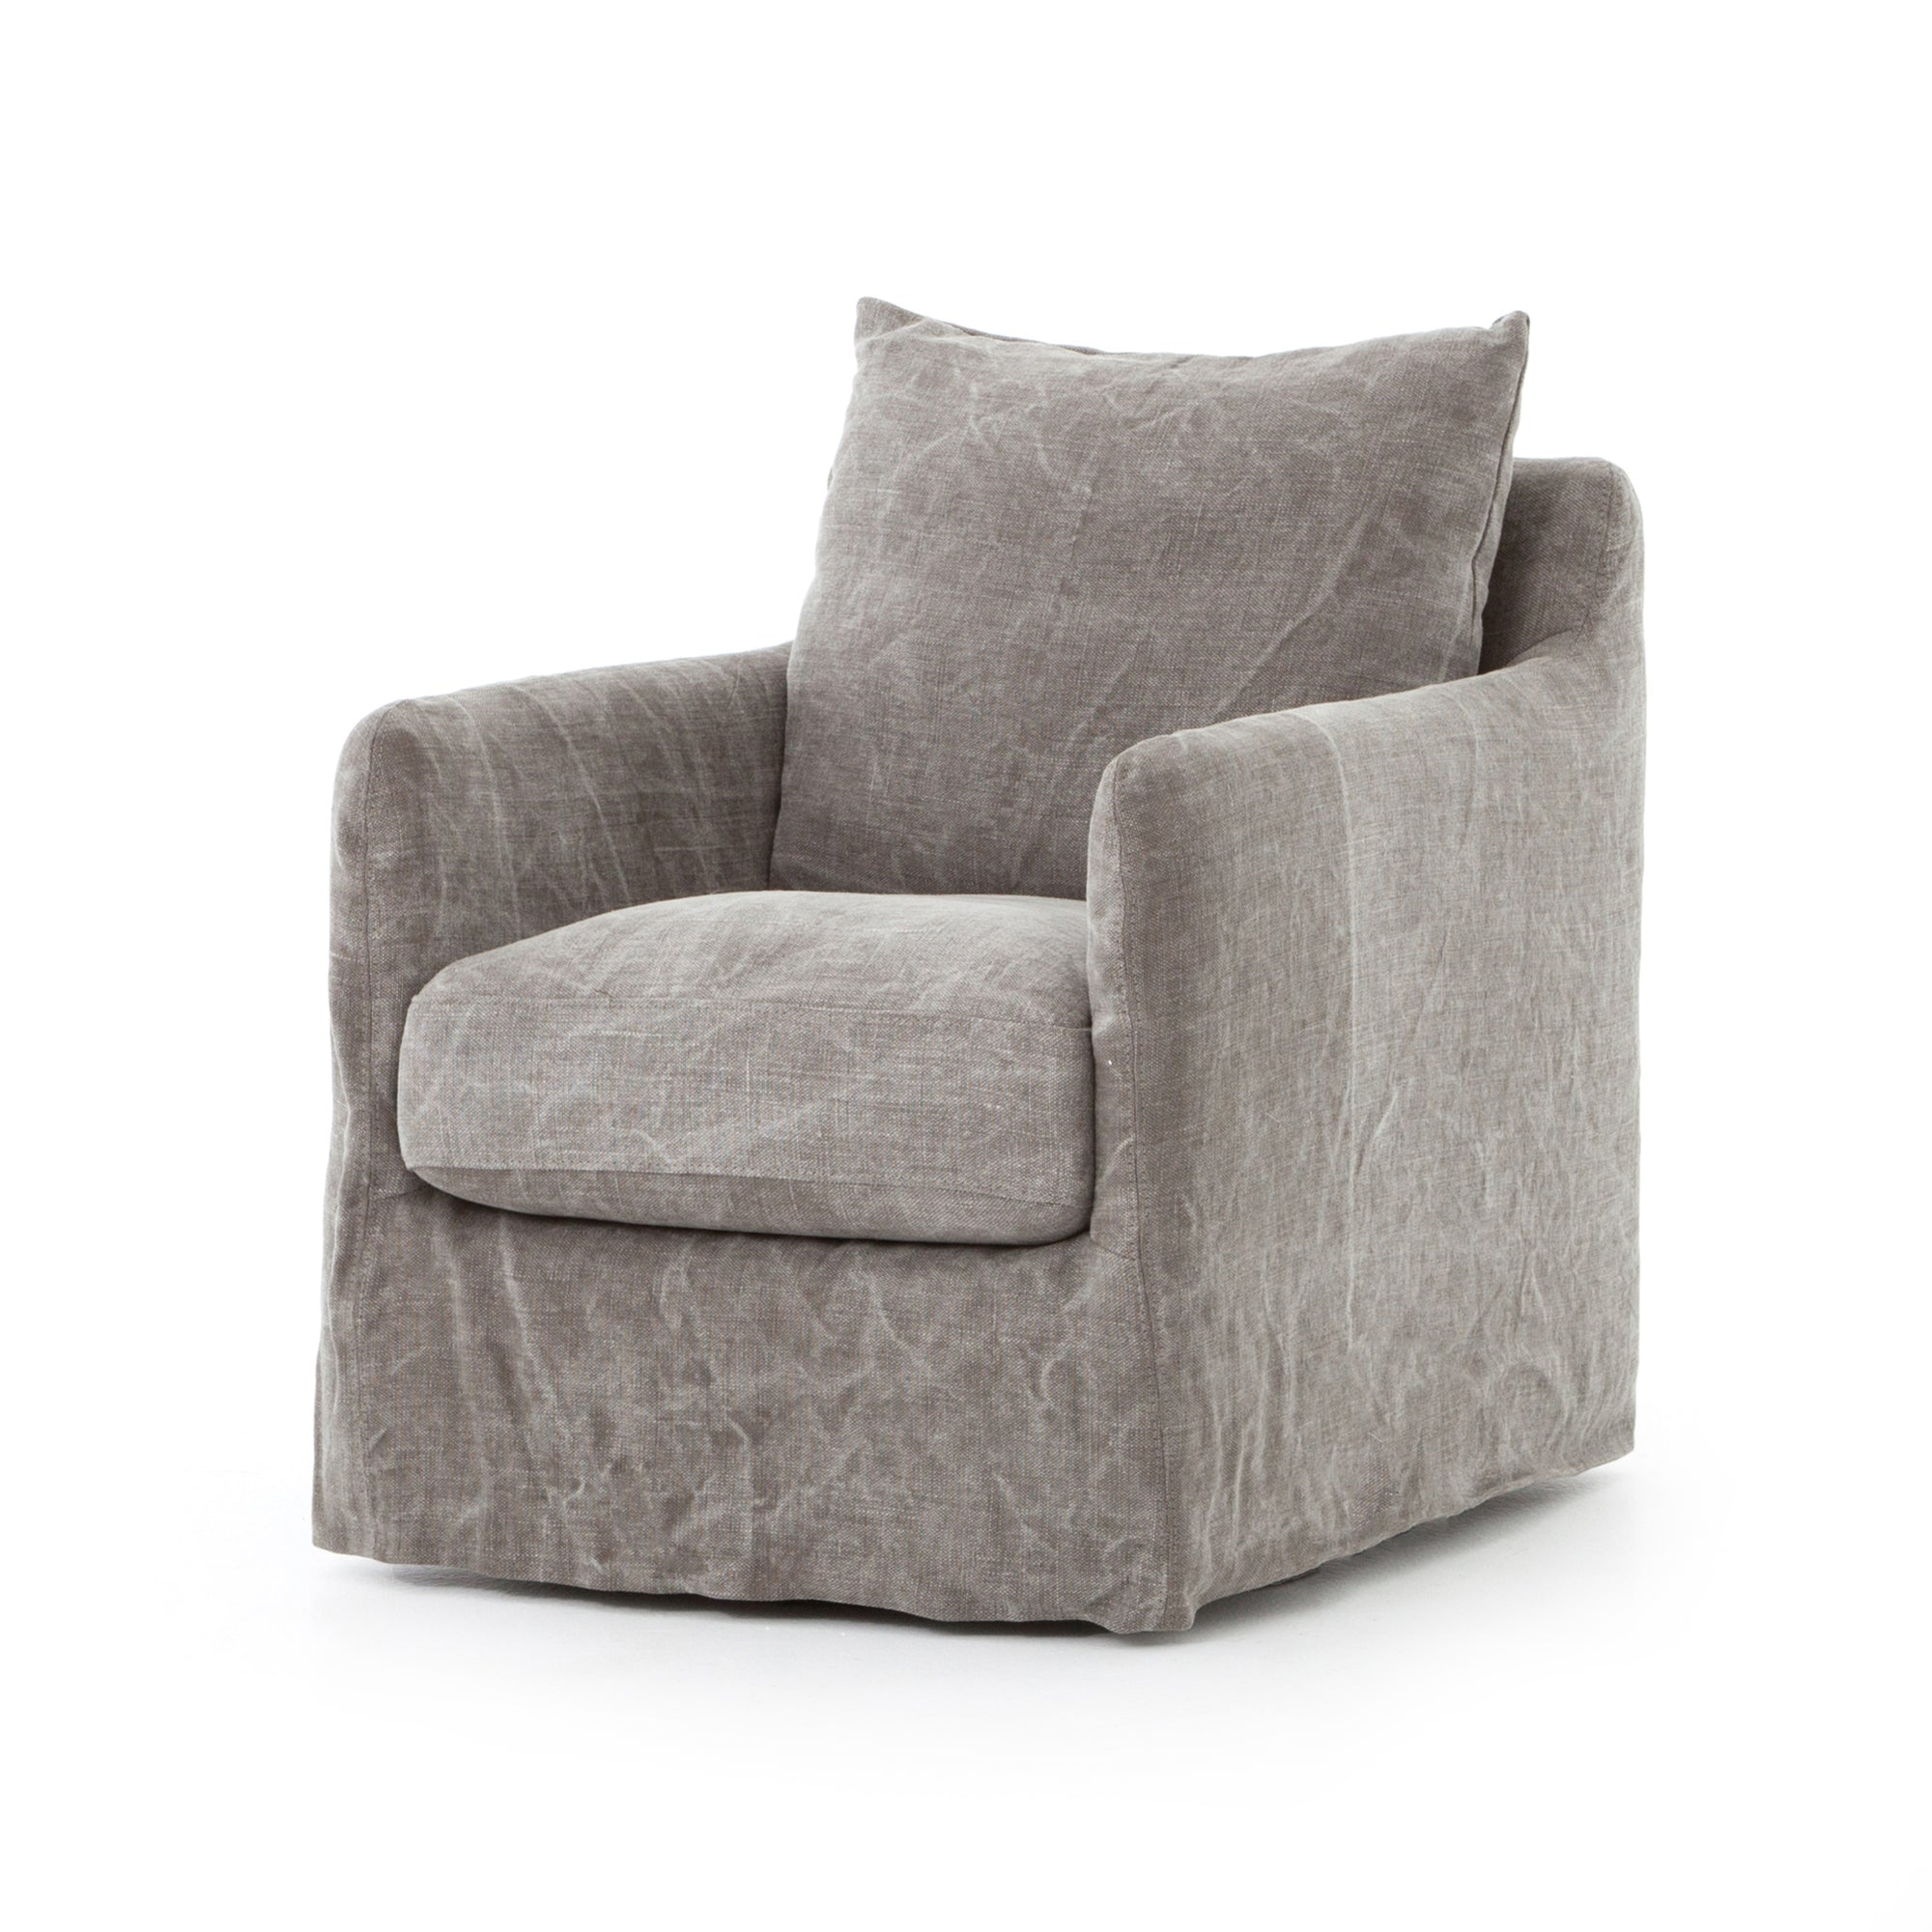 Banks Swivel Chair - Stonewash Heavy Jute